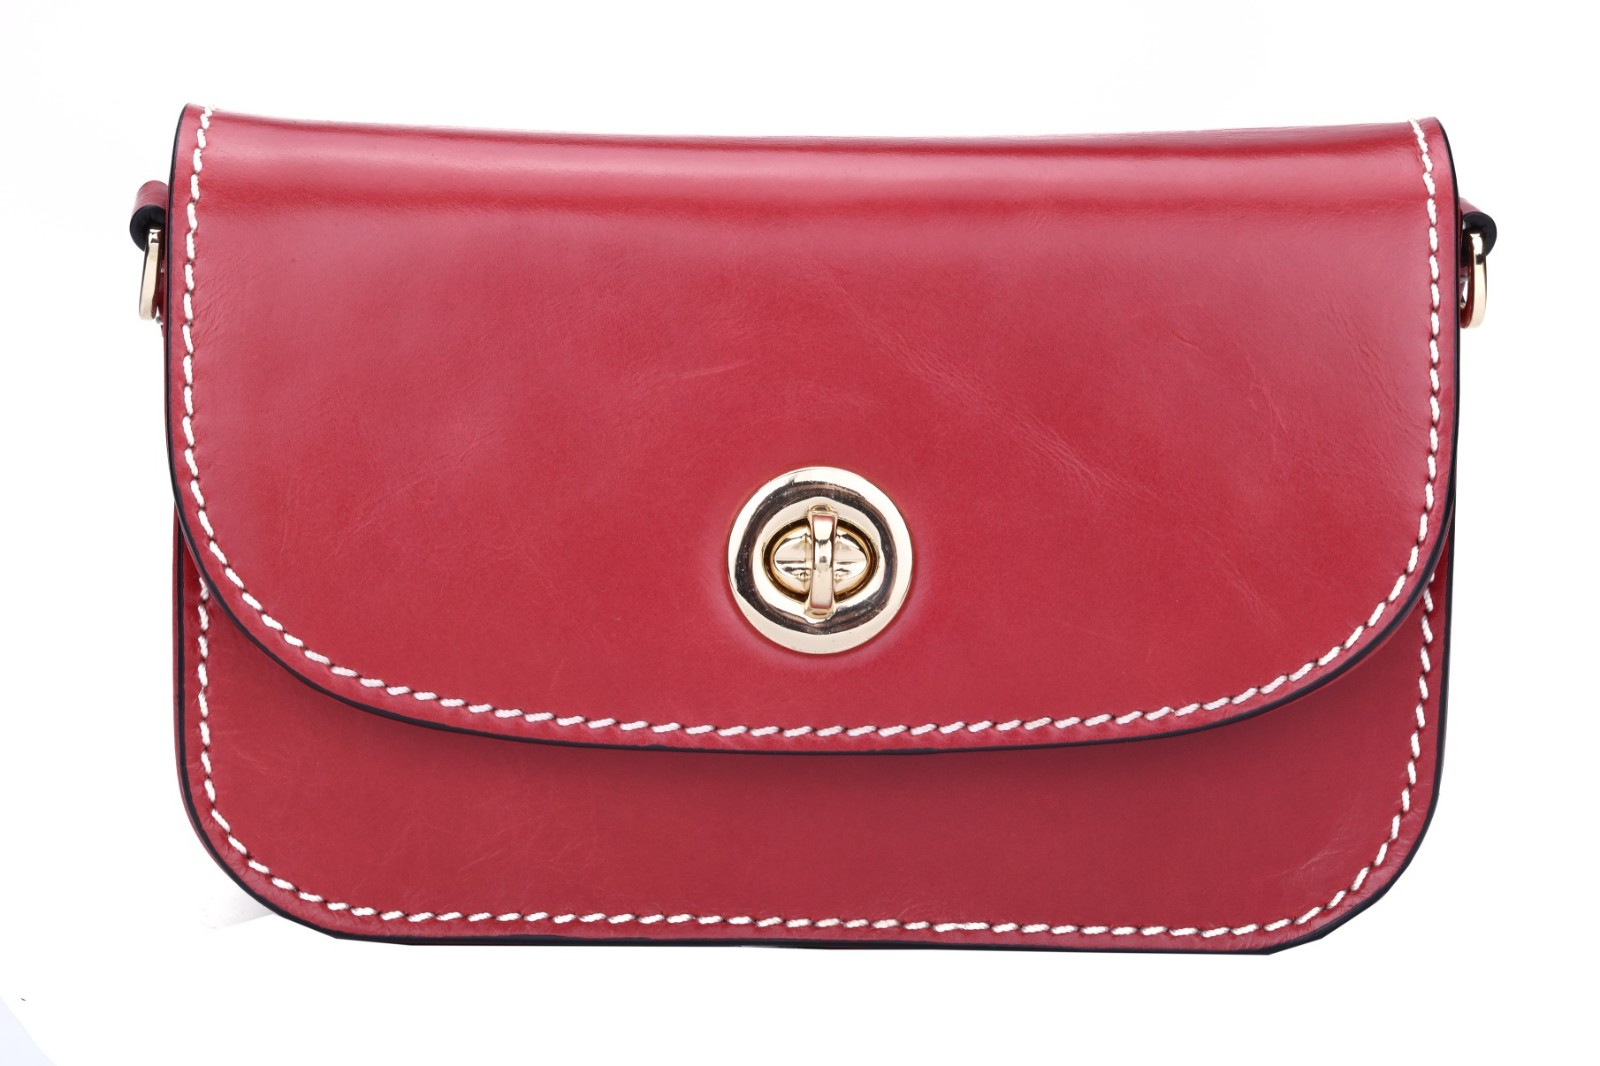 GF bags high-quality evening bags check now for women-1